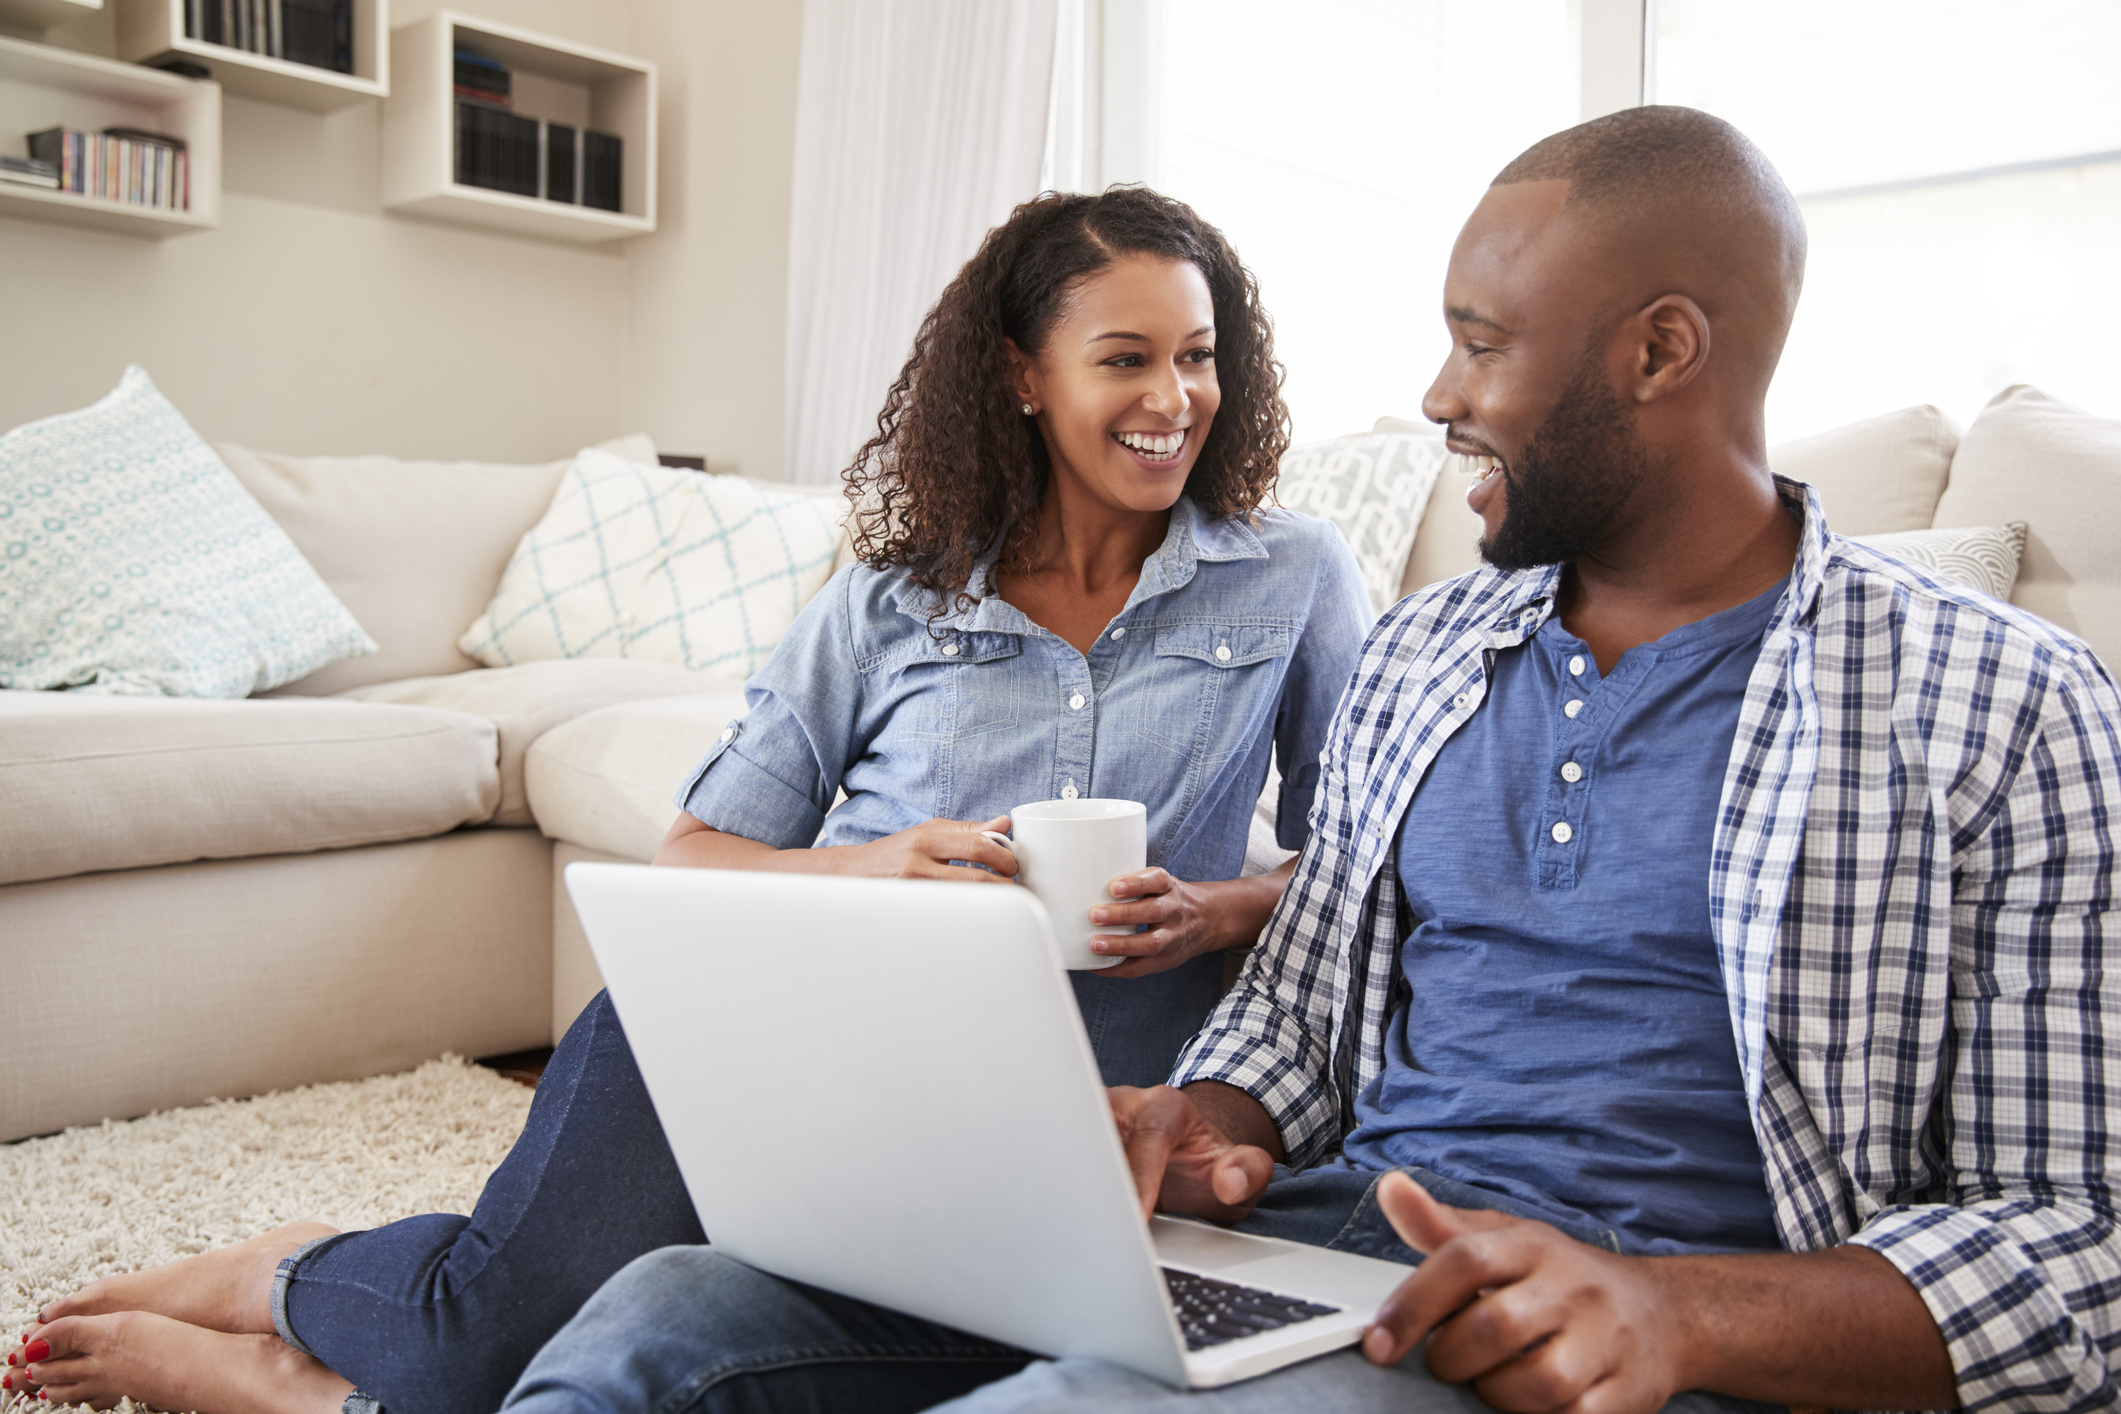 6 Crucial Questions to Ask Your Partner Before Buying a Home